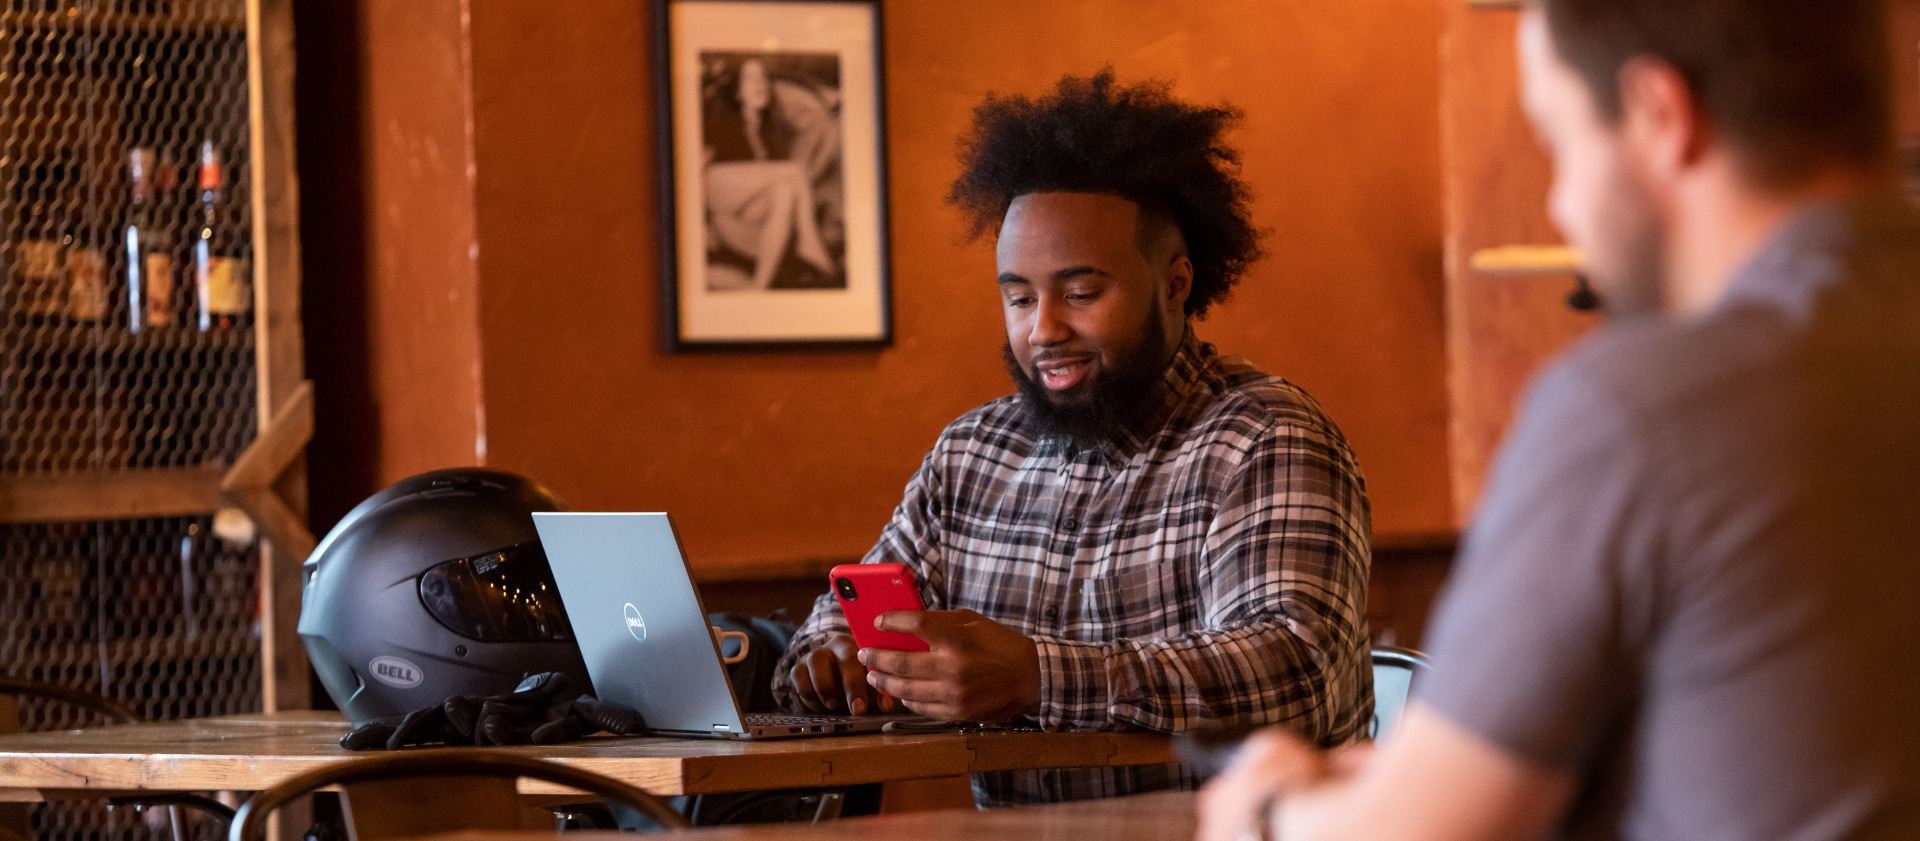 Man using phone while sitting by laptop in cafe